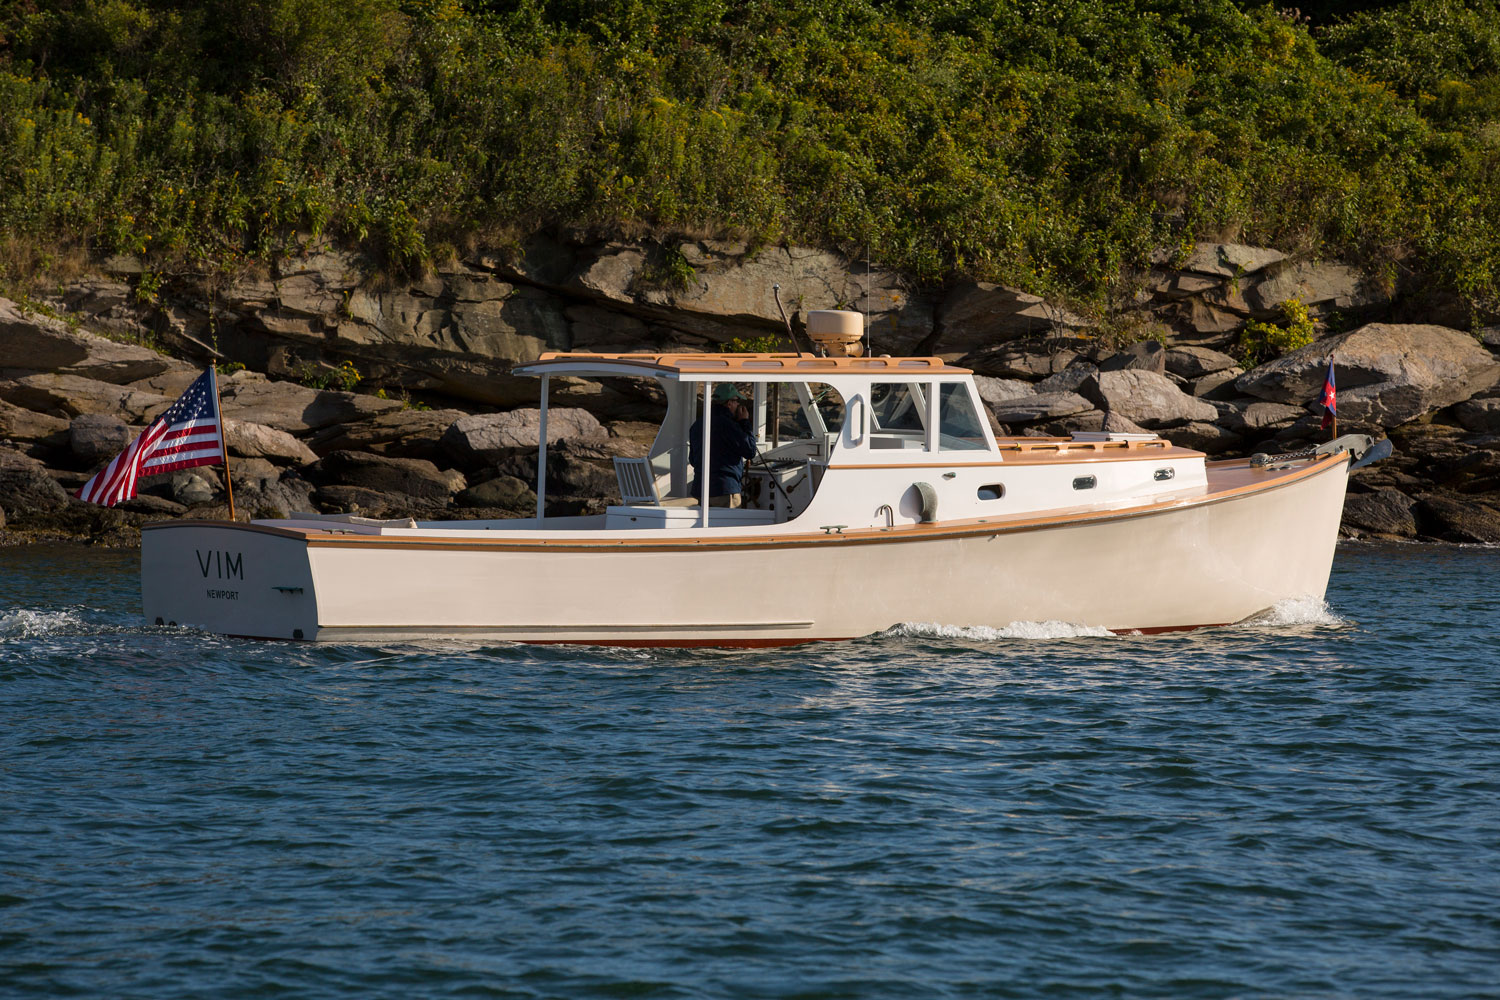 Classic yacht Vim, offered by Lyman-Morse Brokerage